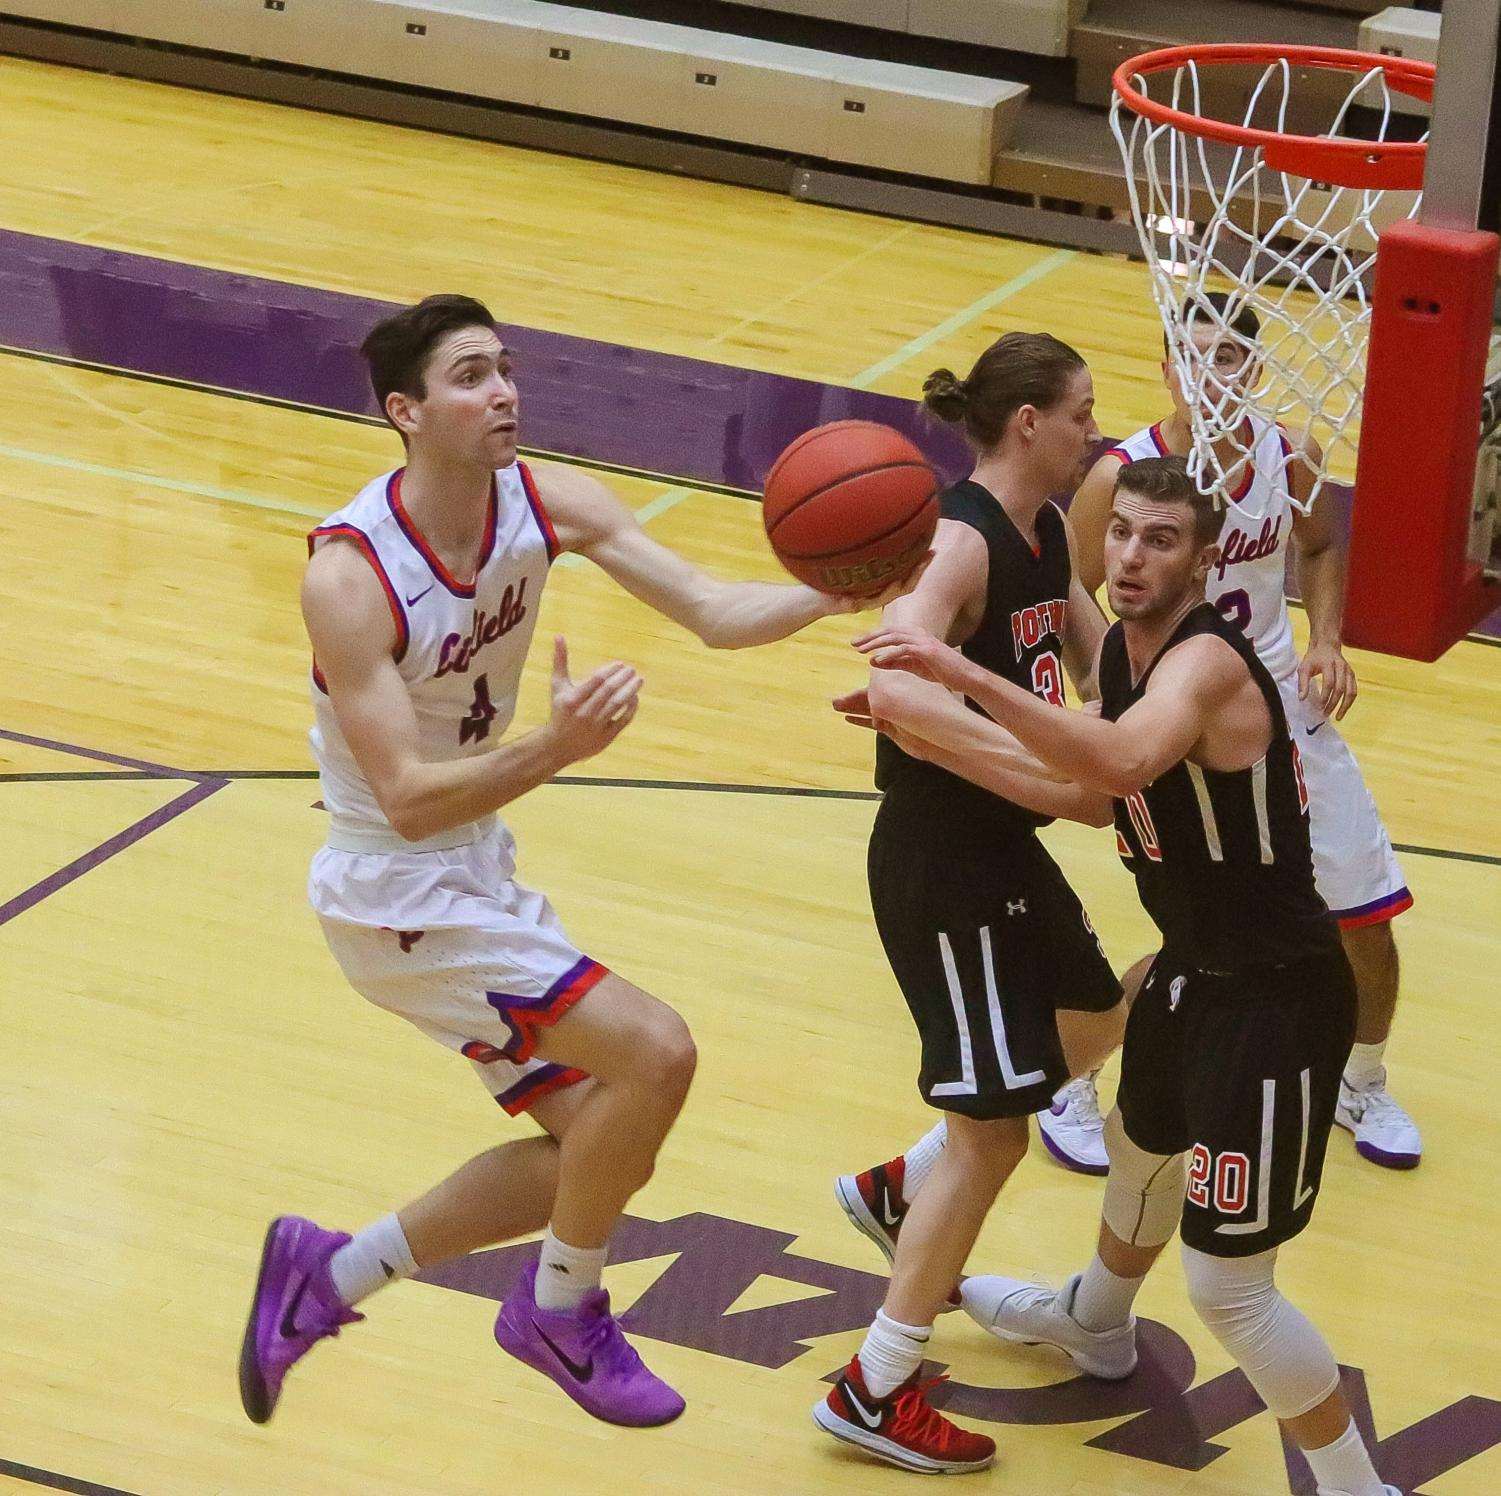 Dempsey Roggenbuck, '21, going up for a layup at a previous game